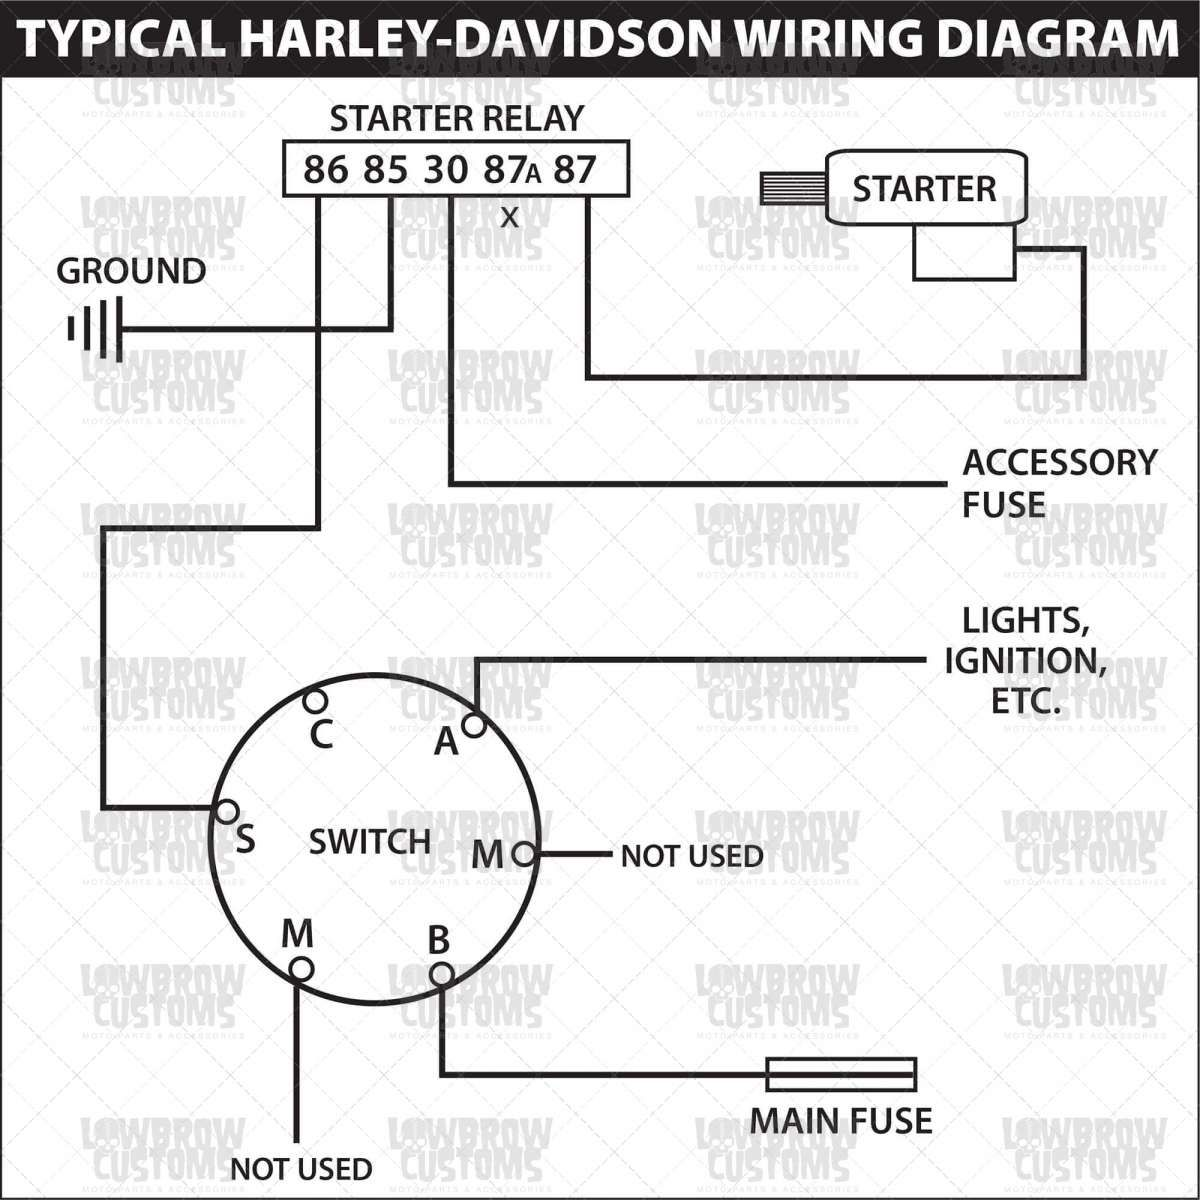 Omc Key Switch Wiring Diagram from i.pinimg.com